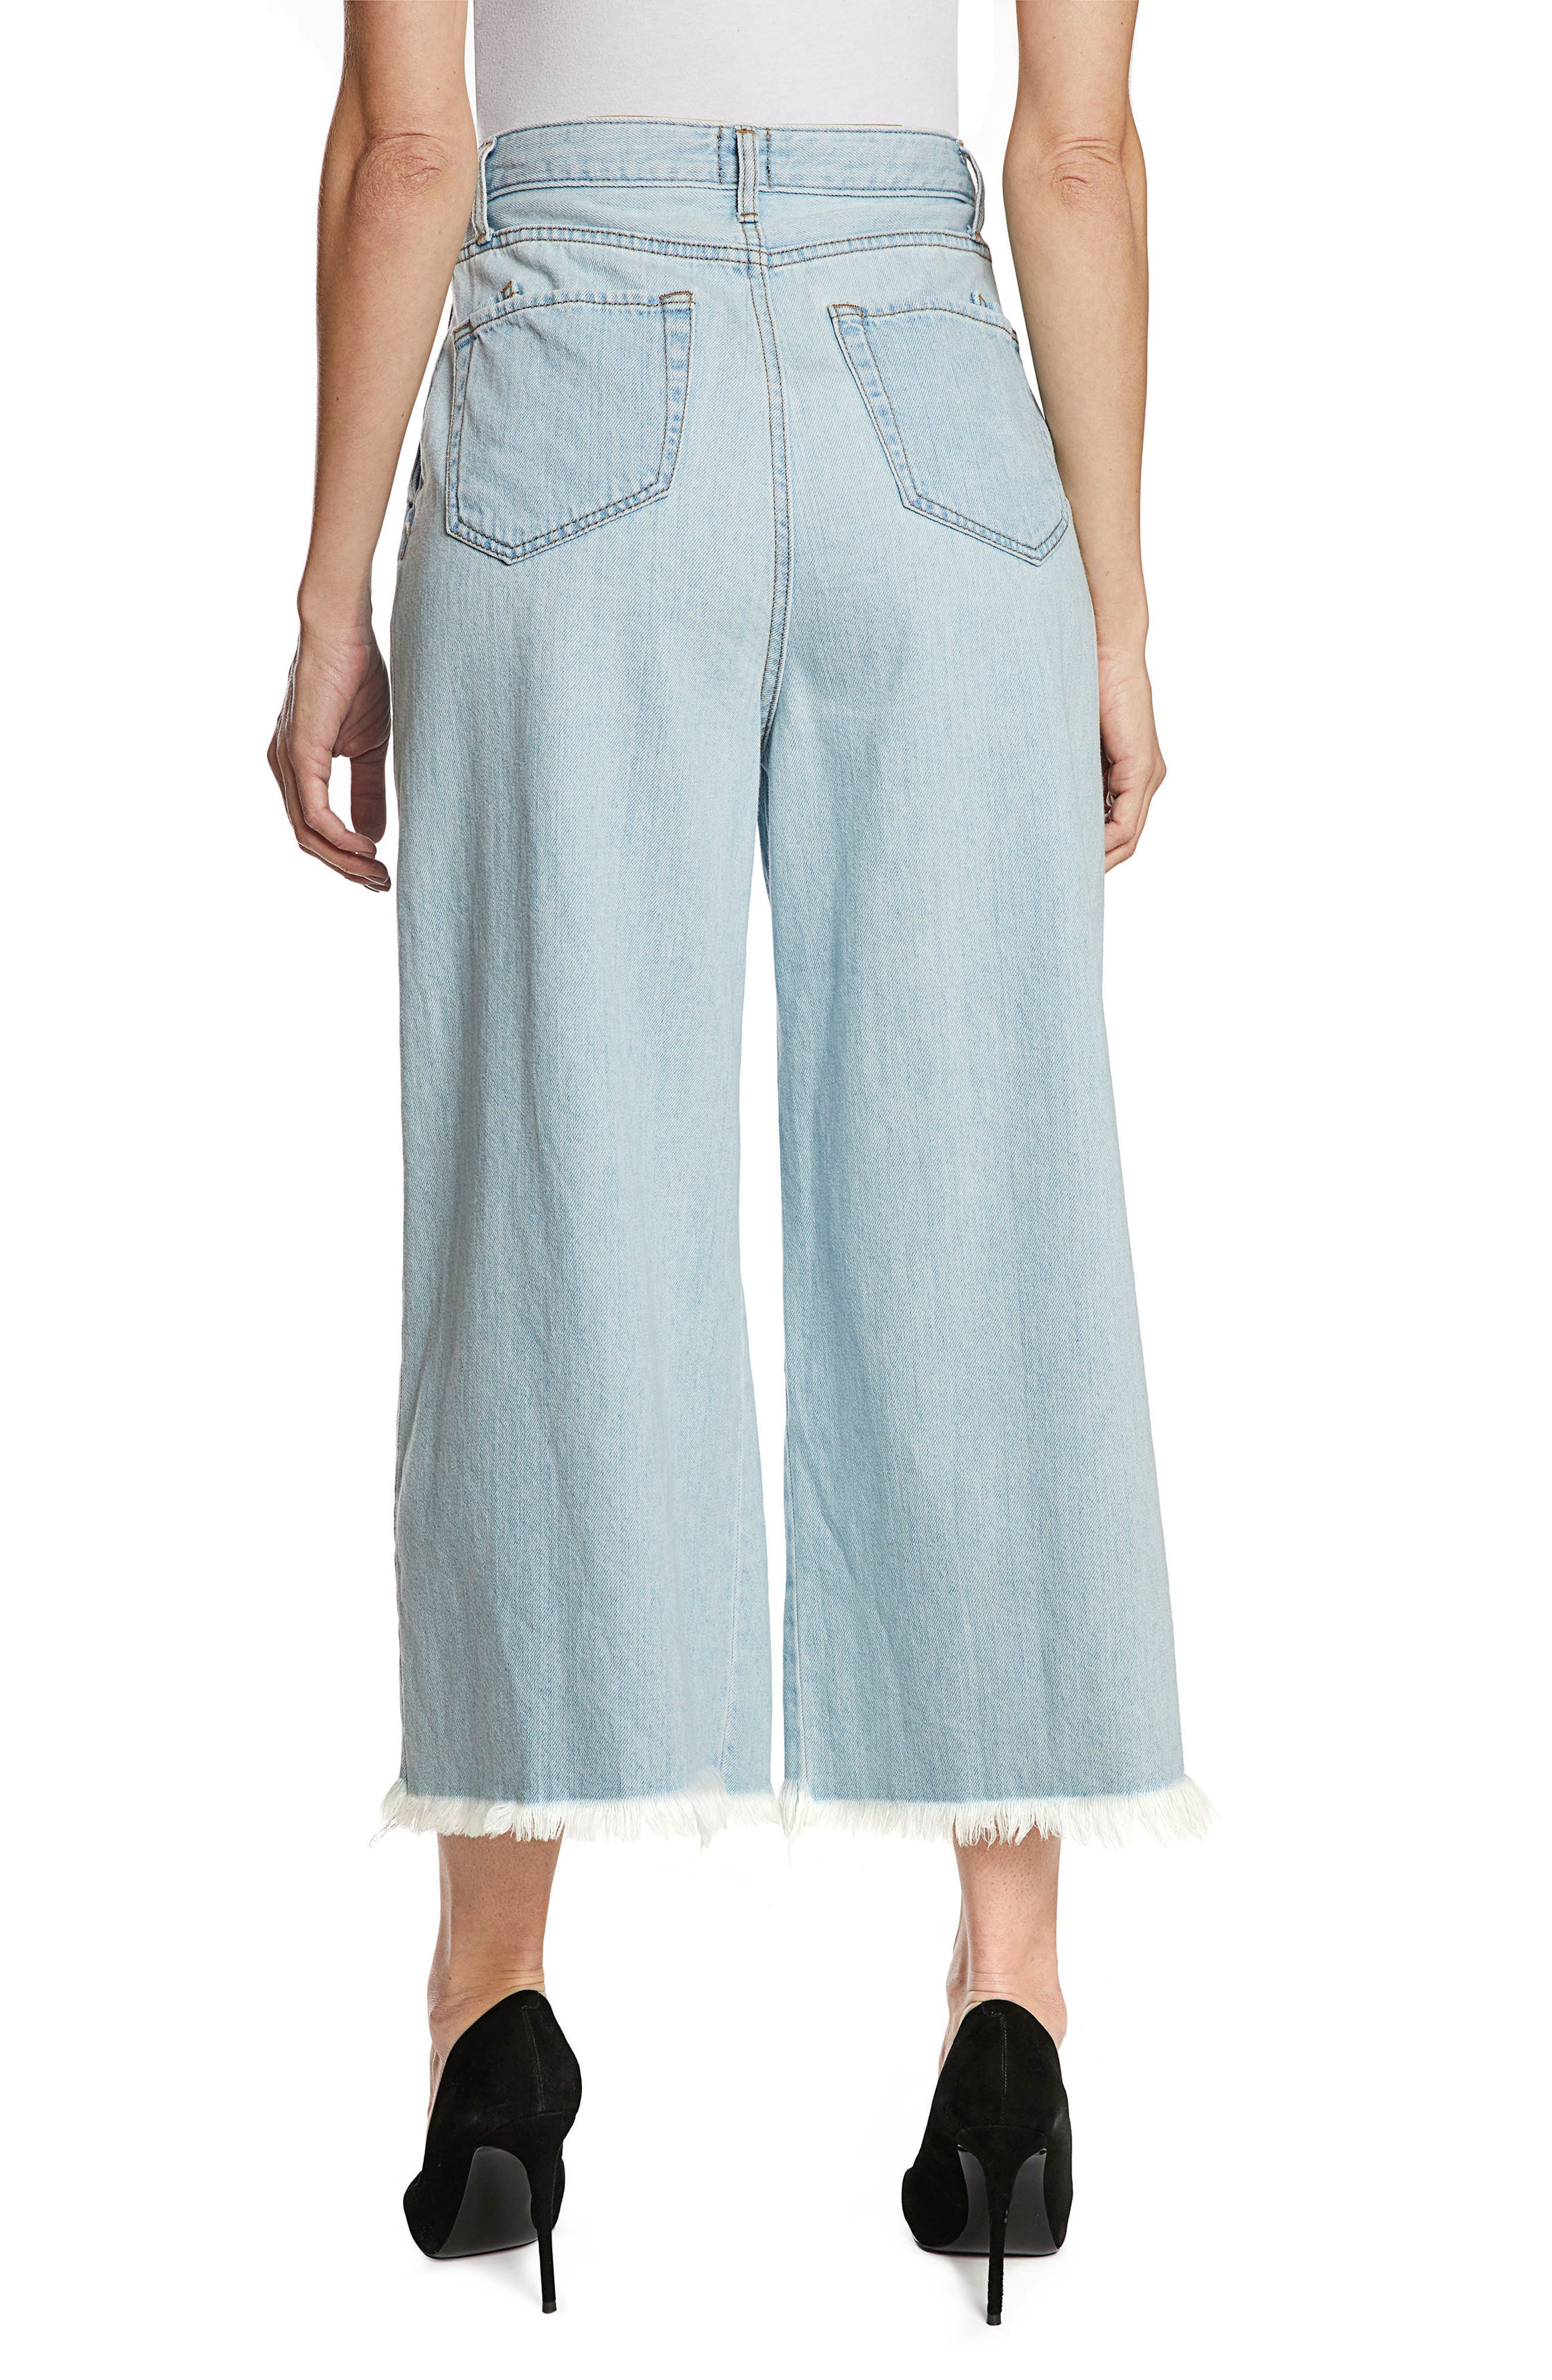 Javelin High Waist Crop Wide Leg Jeans,                             Alternate thumbnail 2, color,                             Light Wash